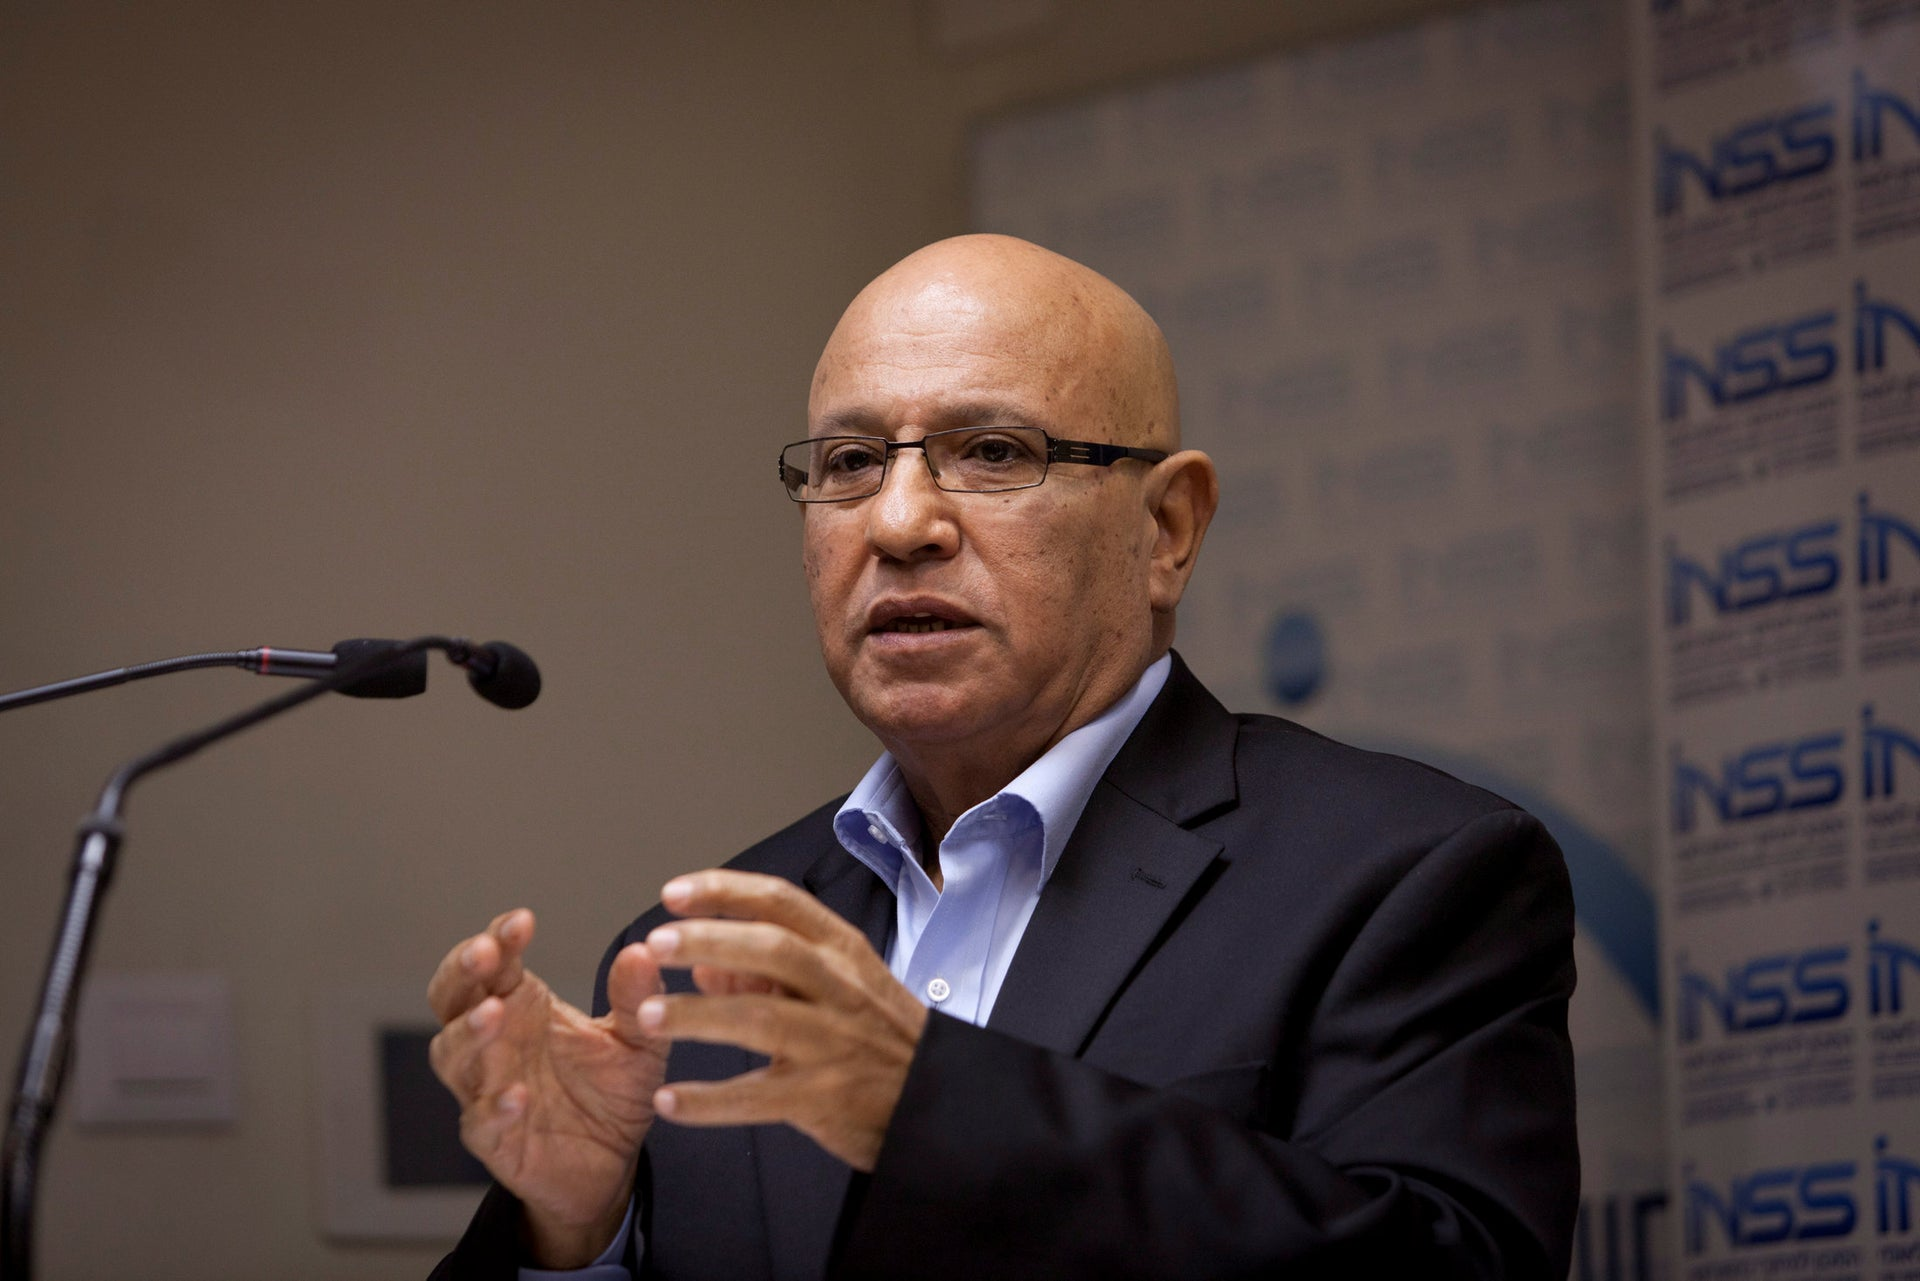 Meir Dagan, former chief of Israel's Mossad, in 2013. A week before he passed away, Dagan spoke to Zorella about the project in Romania